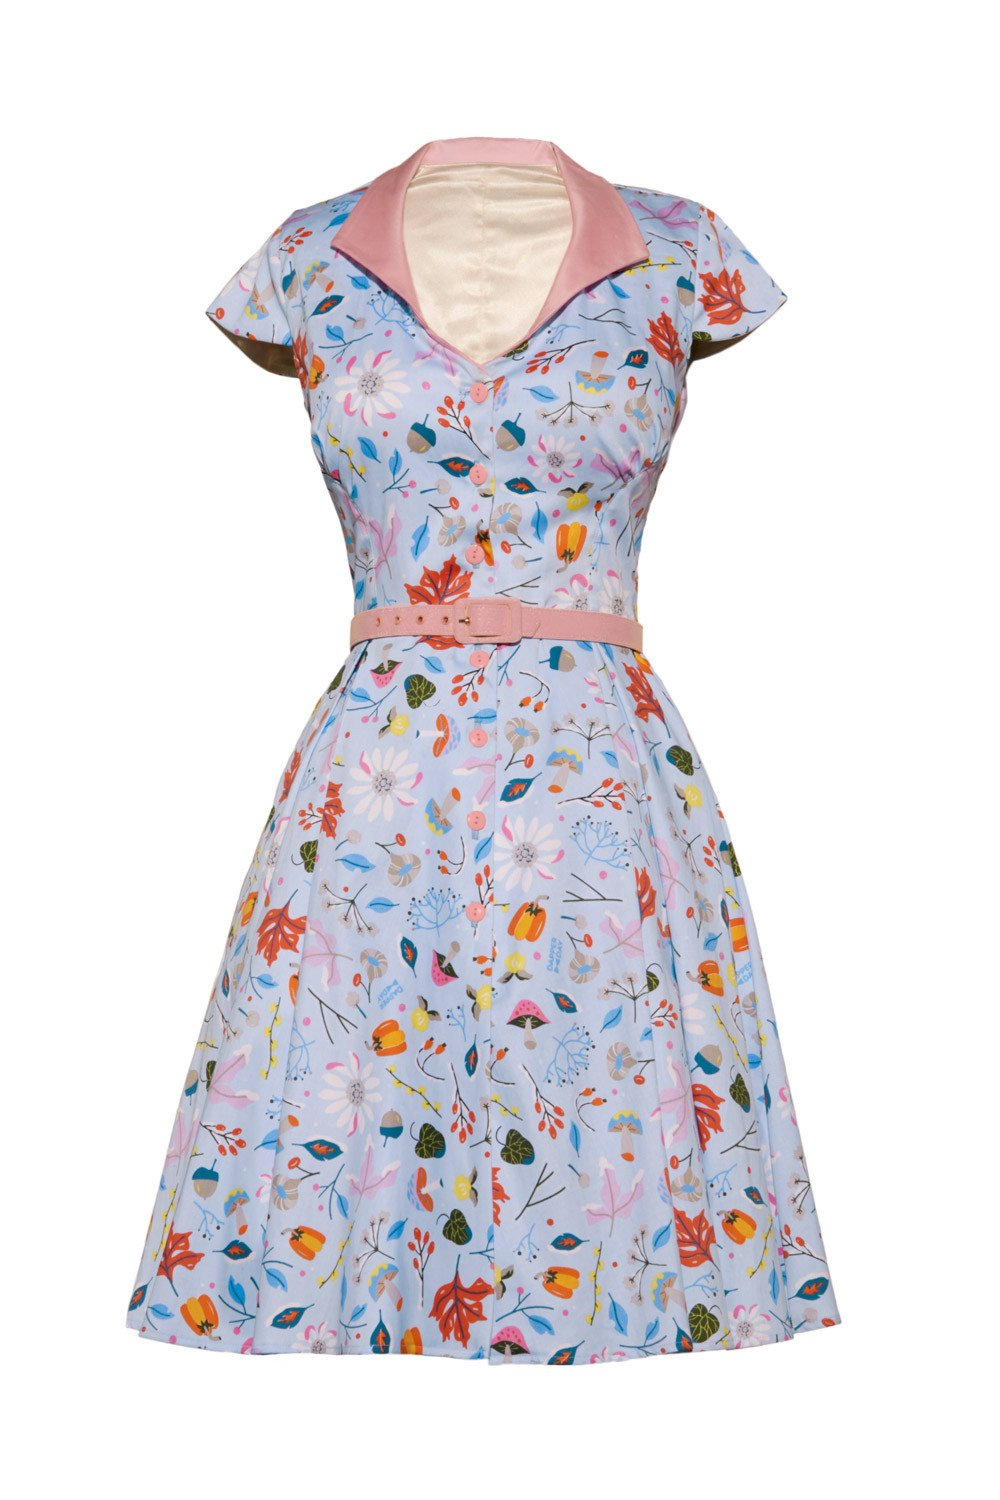 Womens Vintage Pinup Style Colette Dress in Ice Blue First Frost Print (3X)